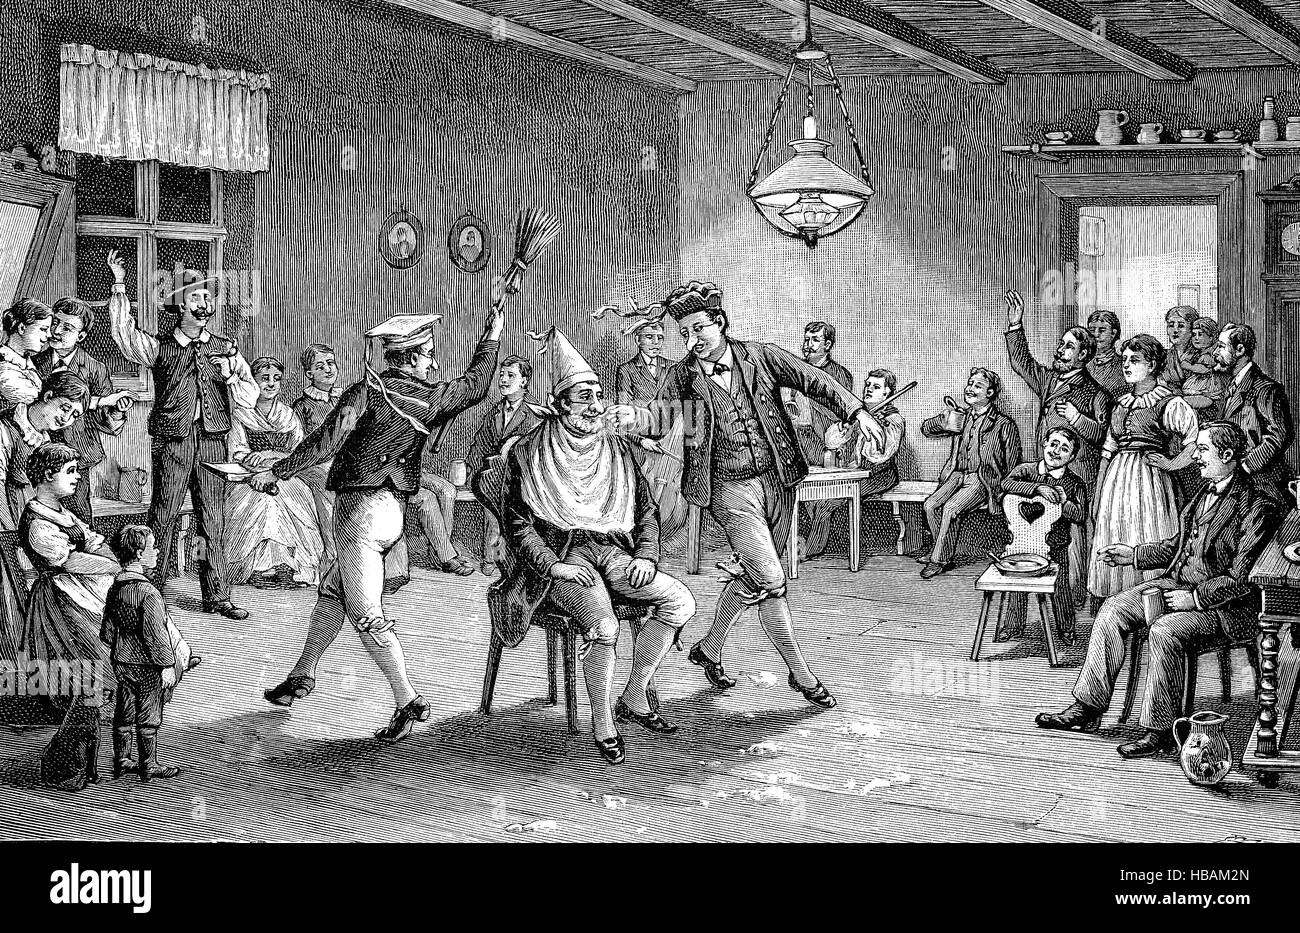 the barber dance, a old custom in Pomerania, hictorical illustration from 1880 - Stock Image